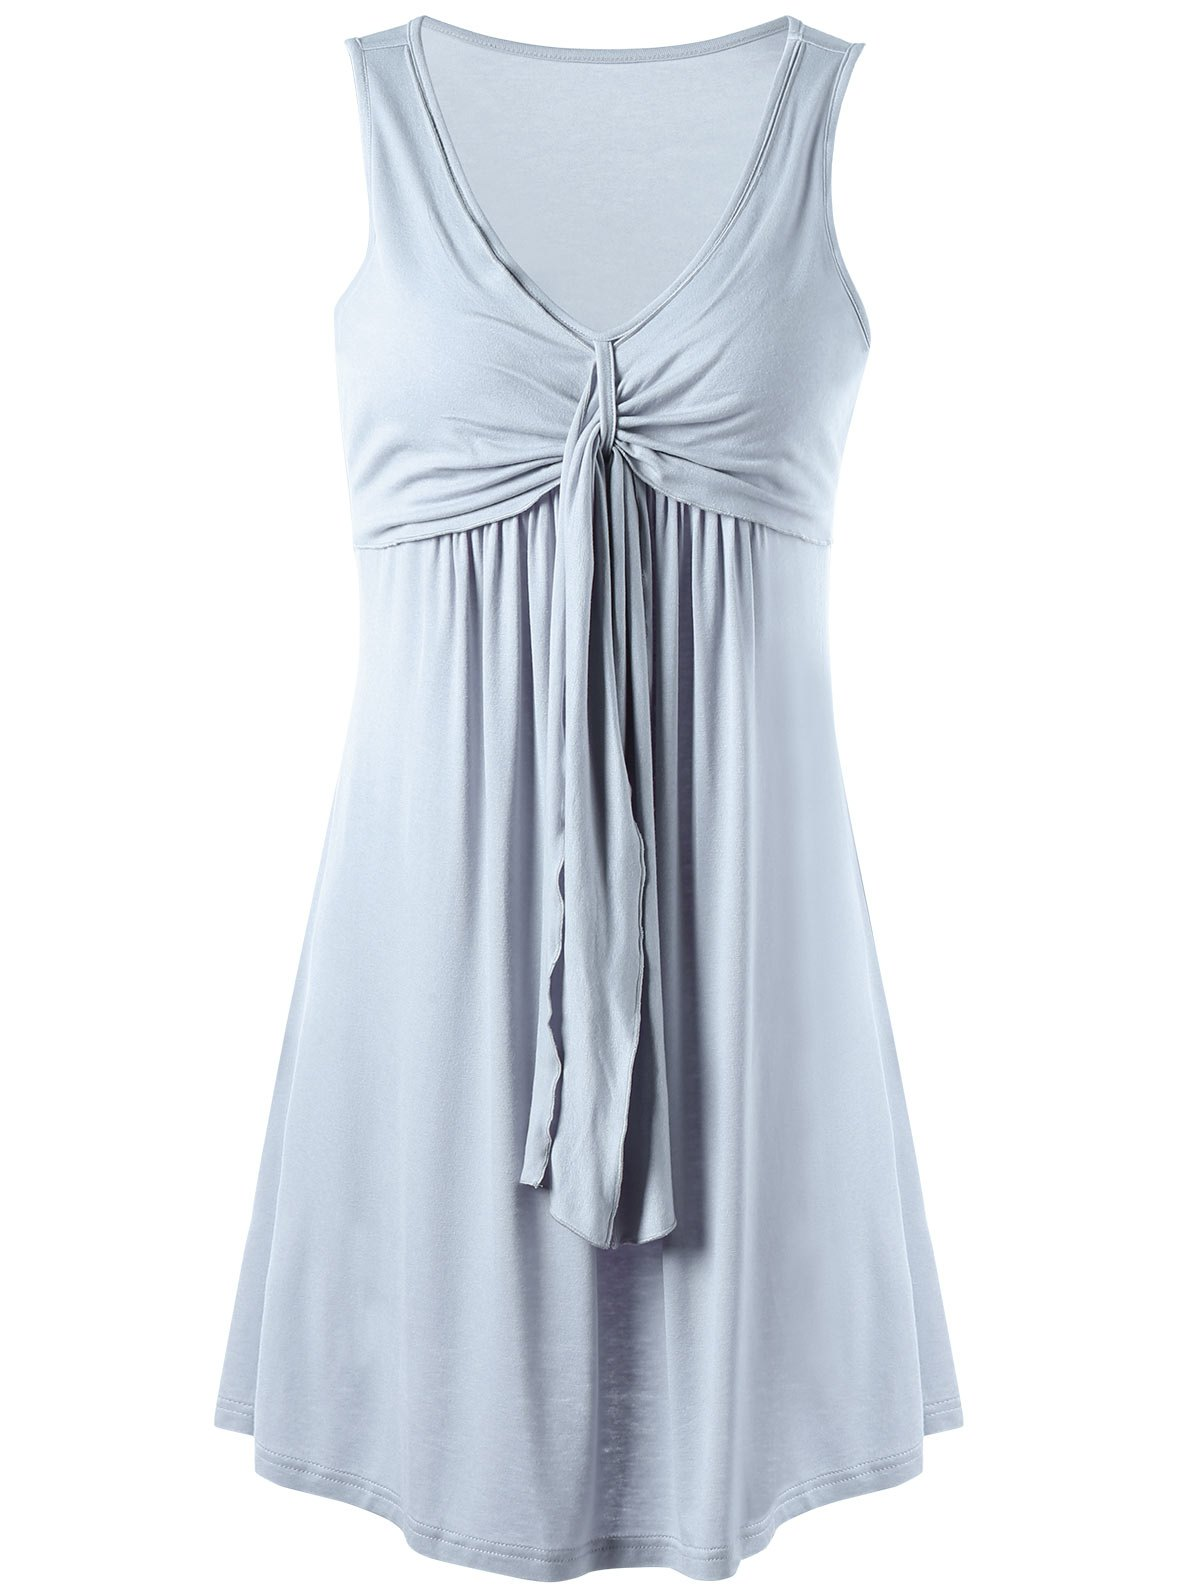 Overlay Drape Front Flared Tank DressWOMEN<br><br>Size: 2XL; Color: LIGHT GRAY; Style: Casual; Material: Rayon,Spandex; Silhouette: A-Line; Dresses Length: Mini; Neckline: V-Neck; Sleeve Length: Sleeveless; Pattern Type: Solid Color; With Belt: No; Season: Summer; Weight: 0.3000kg; Package Contents: 1 x Dress; Occasion: Casual ,Going Out,Night Out;